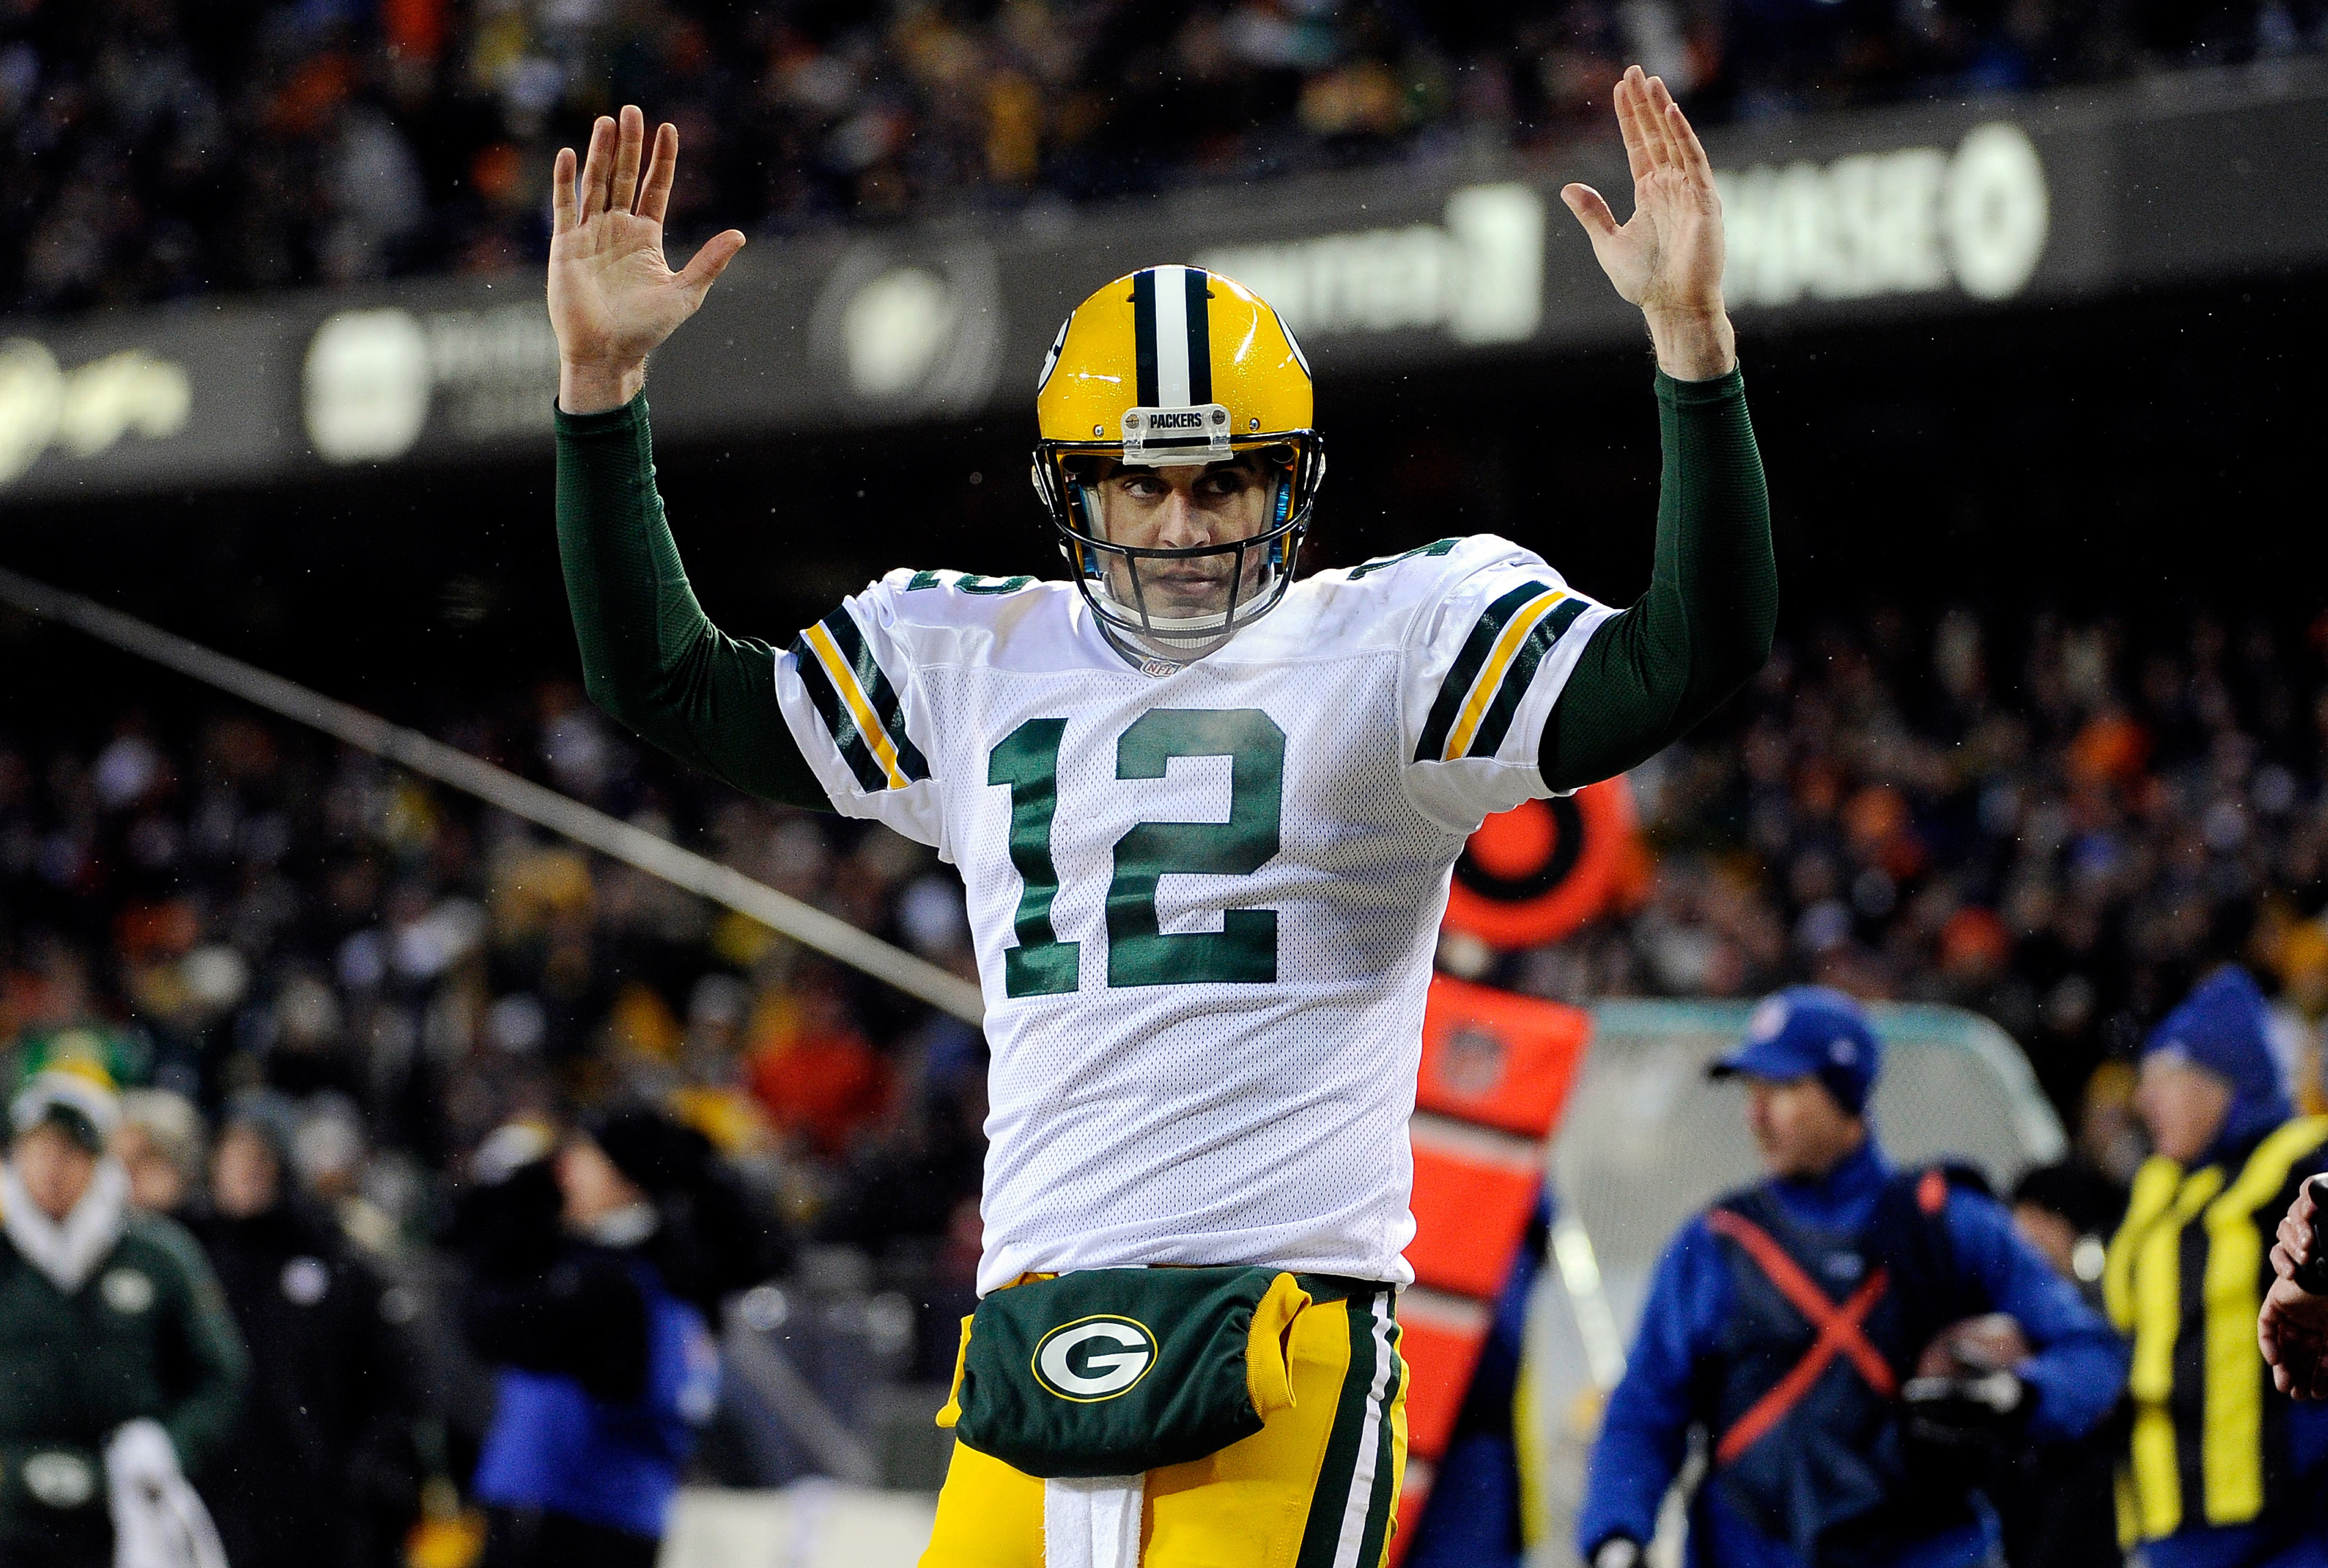 Aaron Rodgers is really good at football.